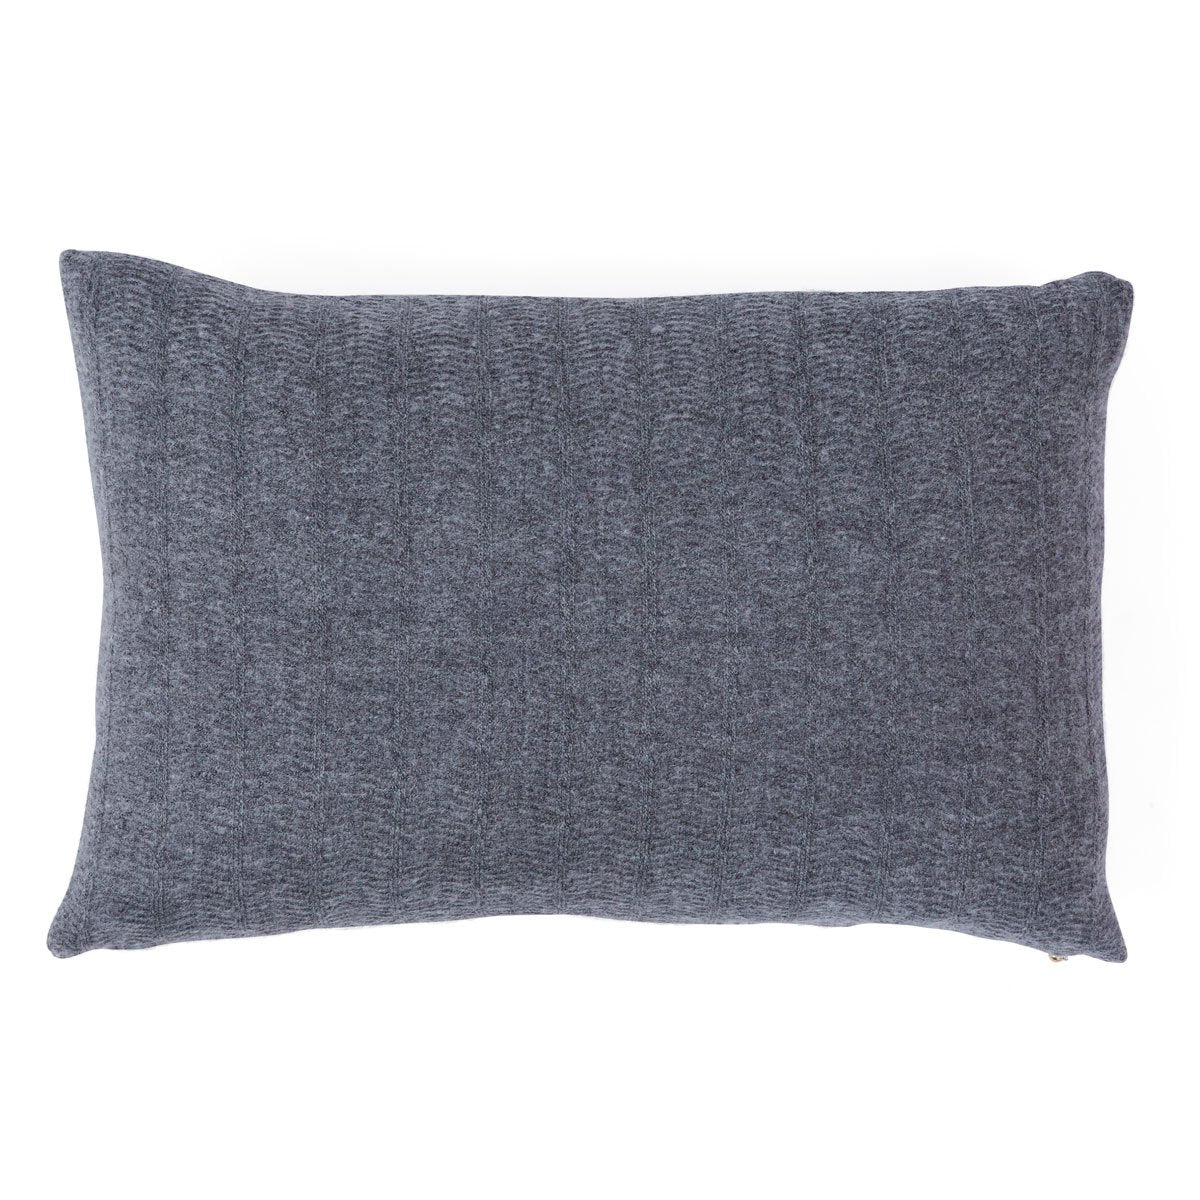 Kata Cushion - Grey mohair wool Melange OYOY Living design